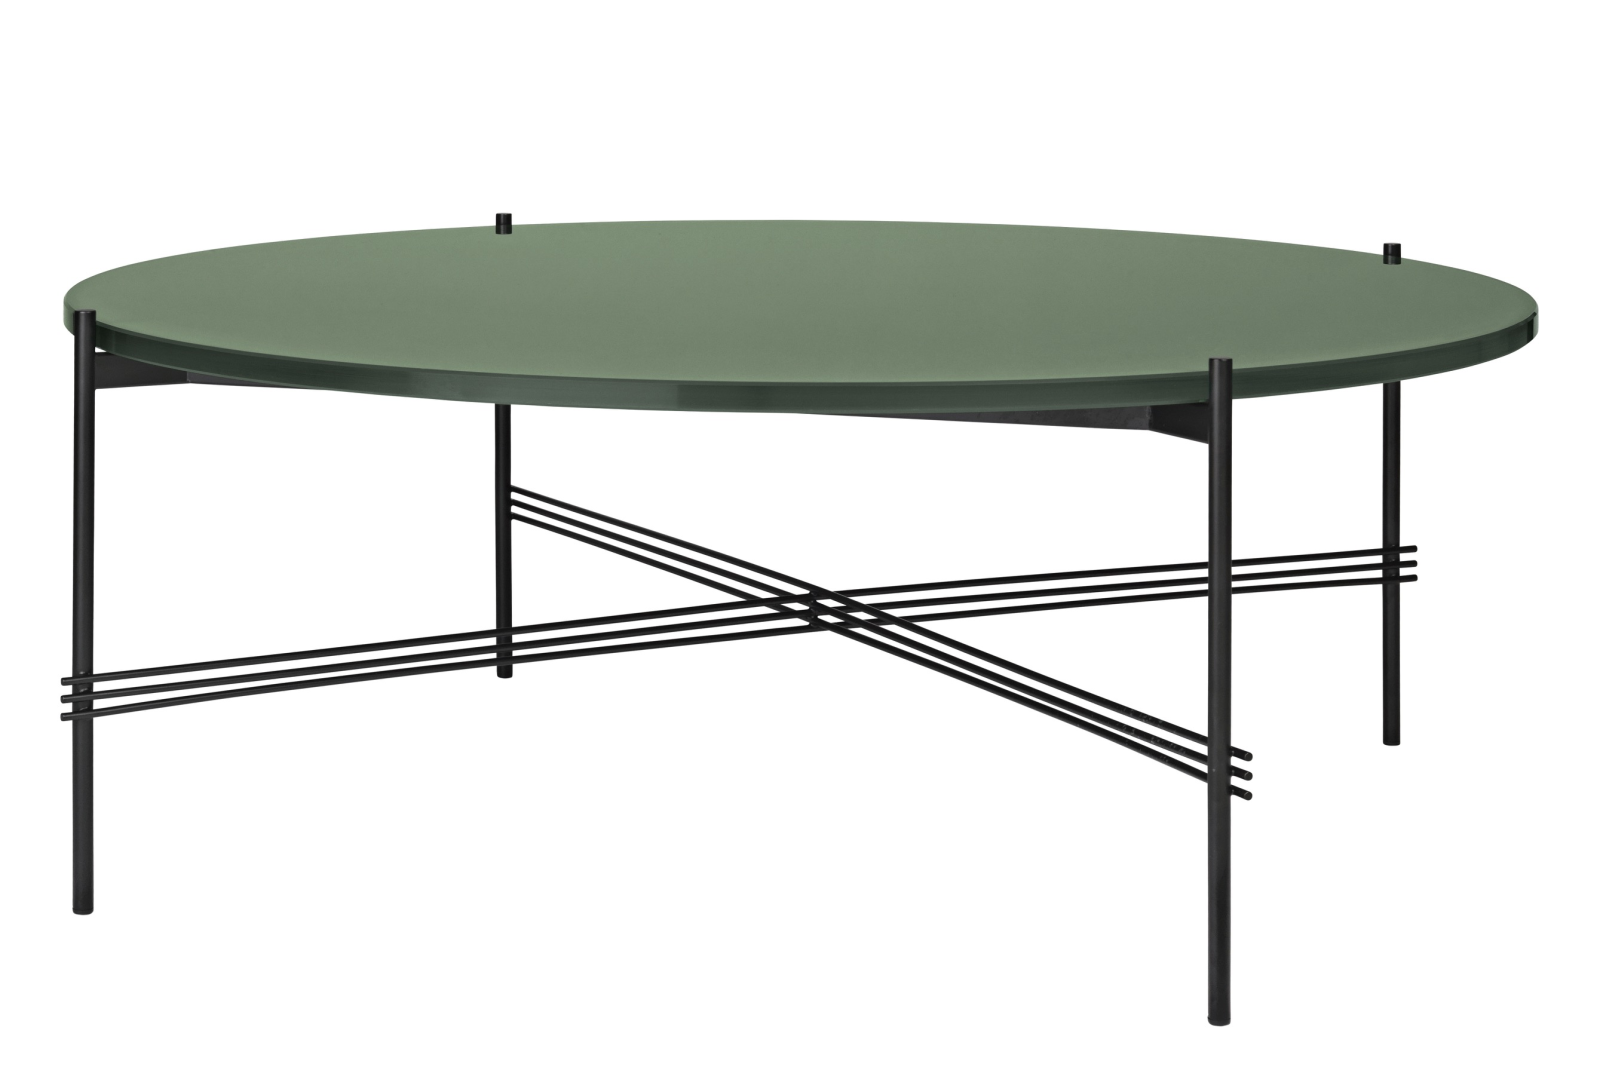 TS Round Coffee Table with Glass Top - Black Frame Dusty Green Top and Black Frame, 0 105 x 40 cm